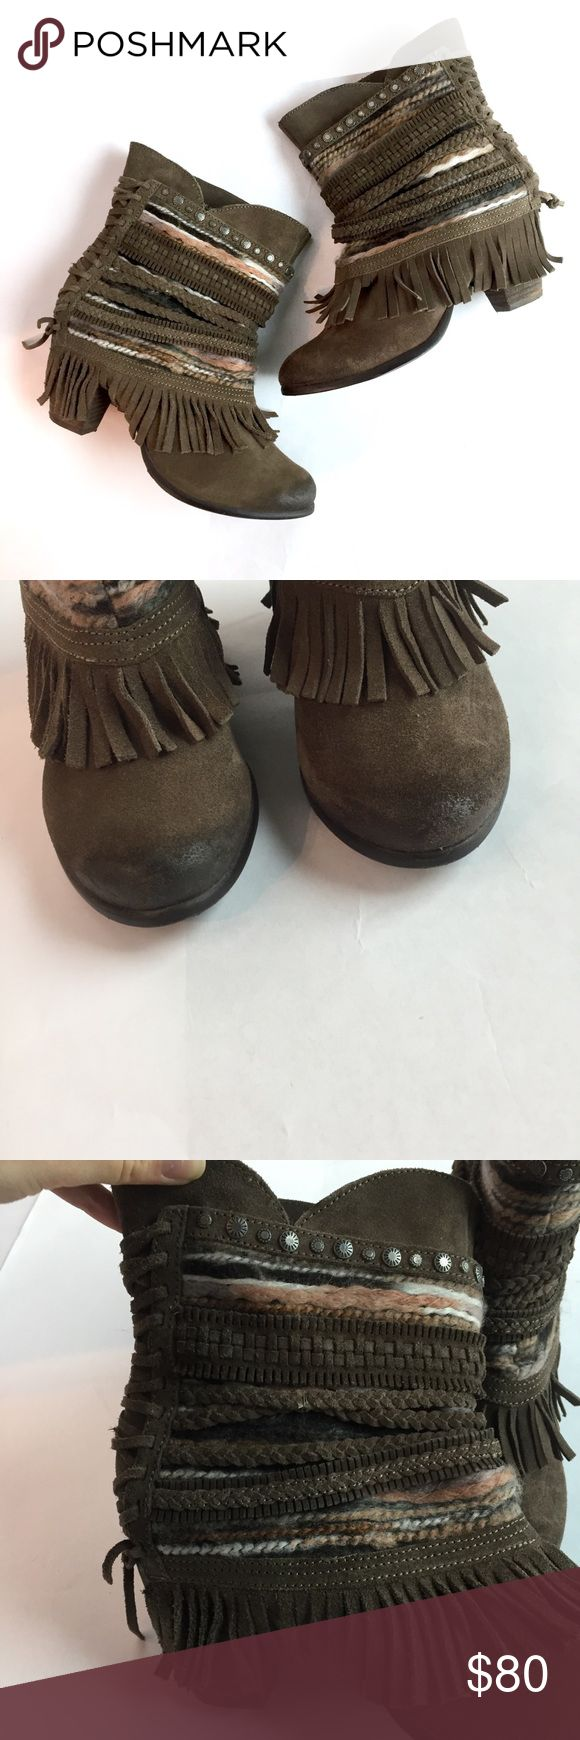 NAUGHTY MONKEY Fringe Braided Ankle Boots \\ Sz 9 Perfect for fall! Suede ankle boots by Naughty Monkey. Awesome Fringe and Braided details. Size 9. naughty monkey Shoes Ankle Boots & Booties